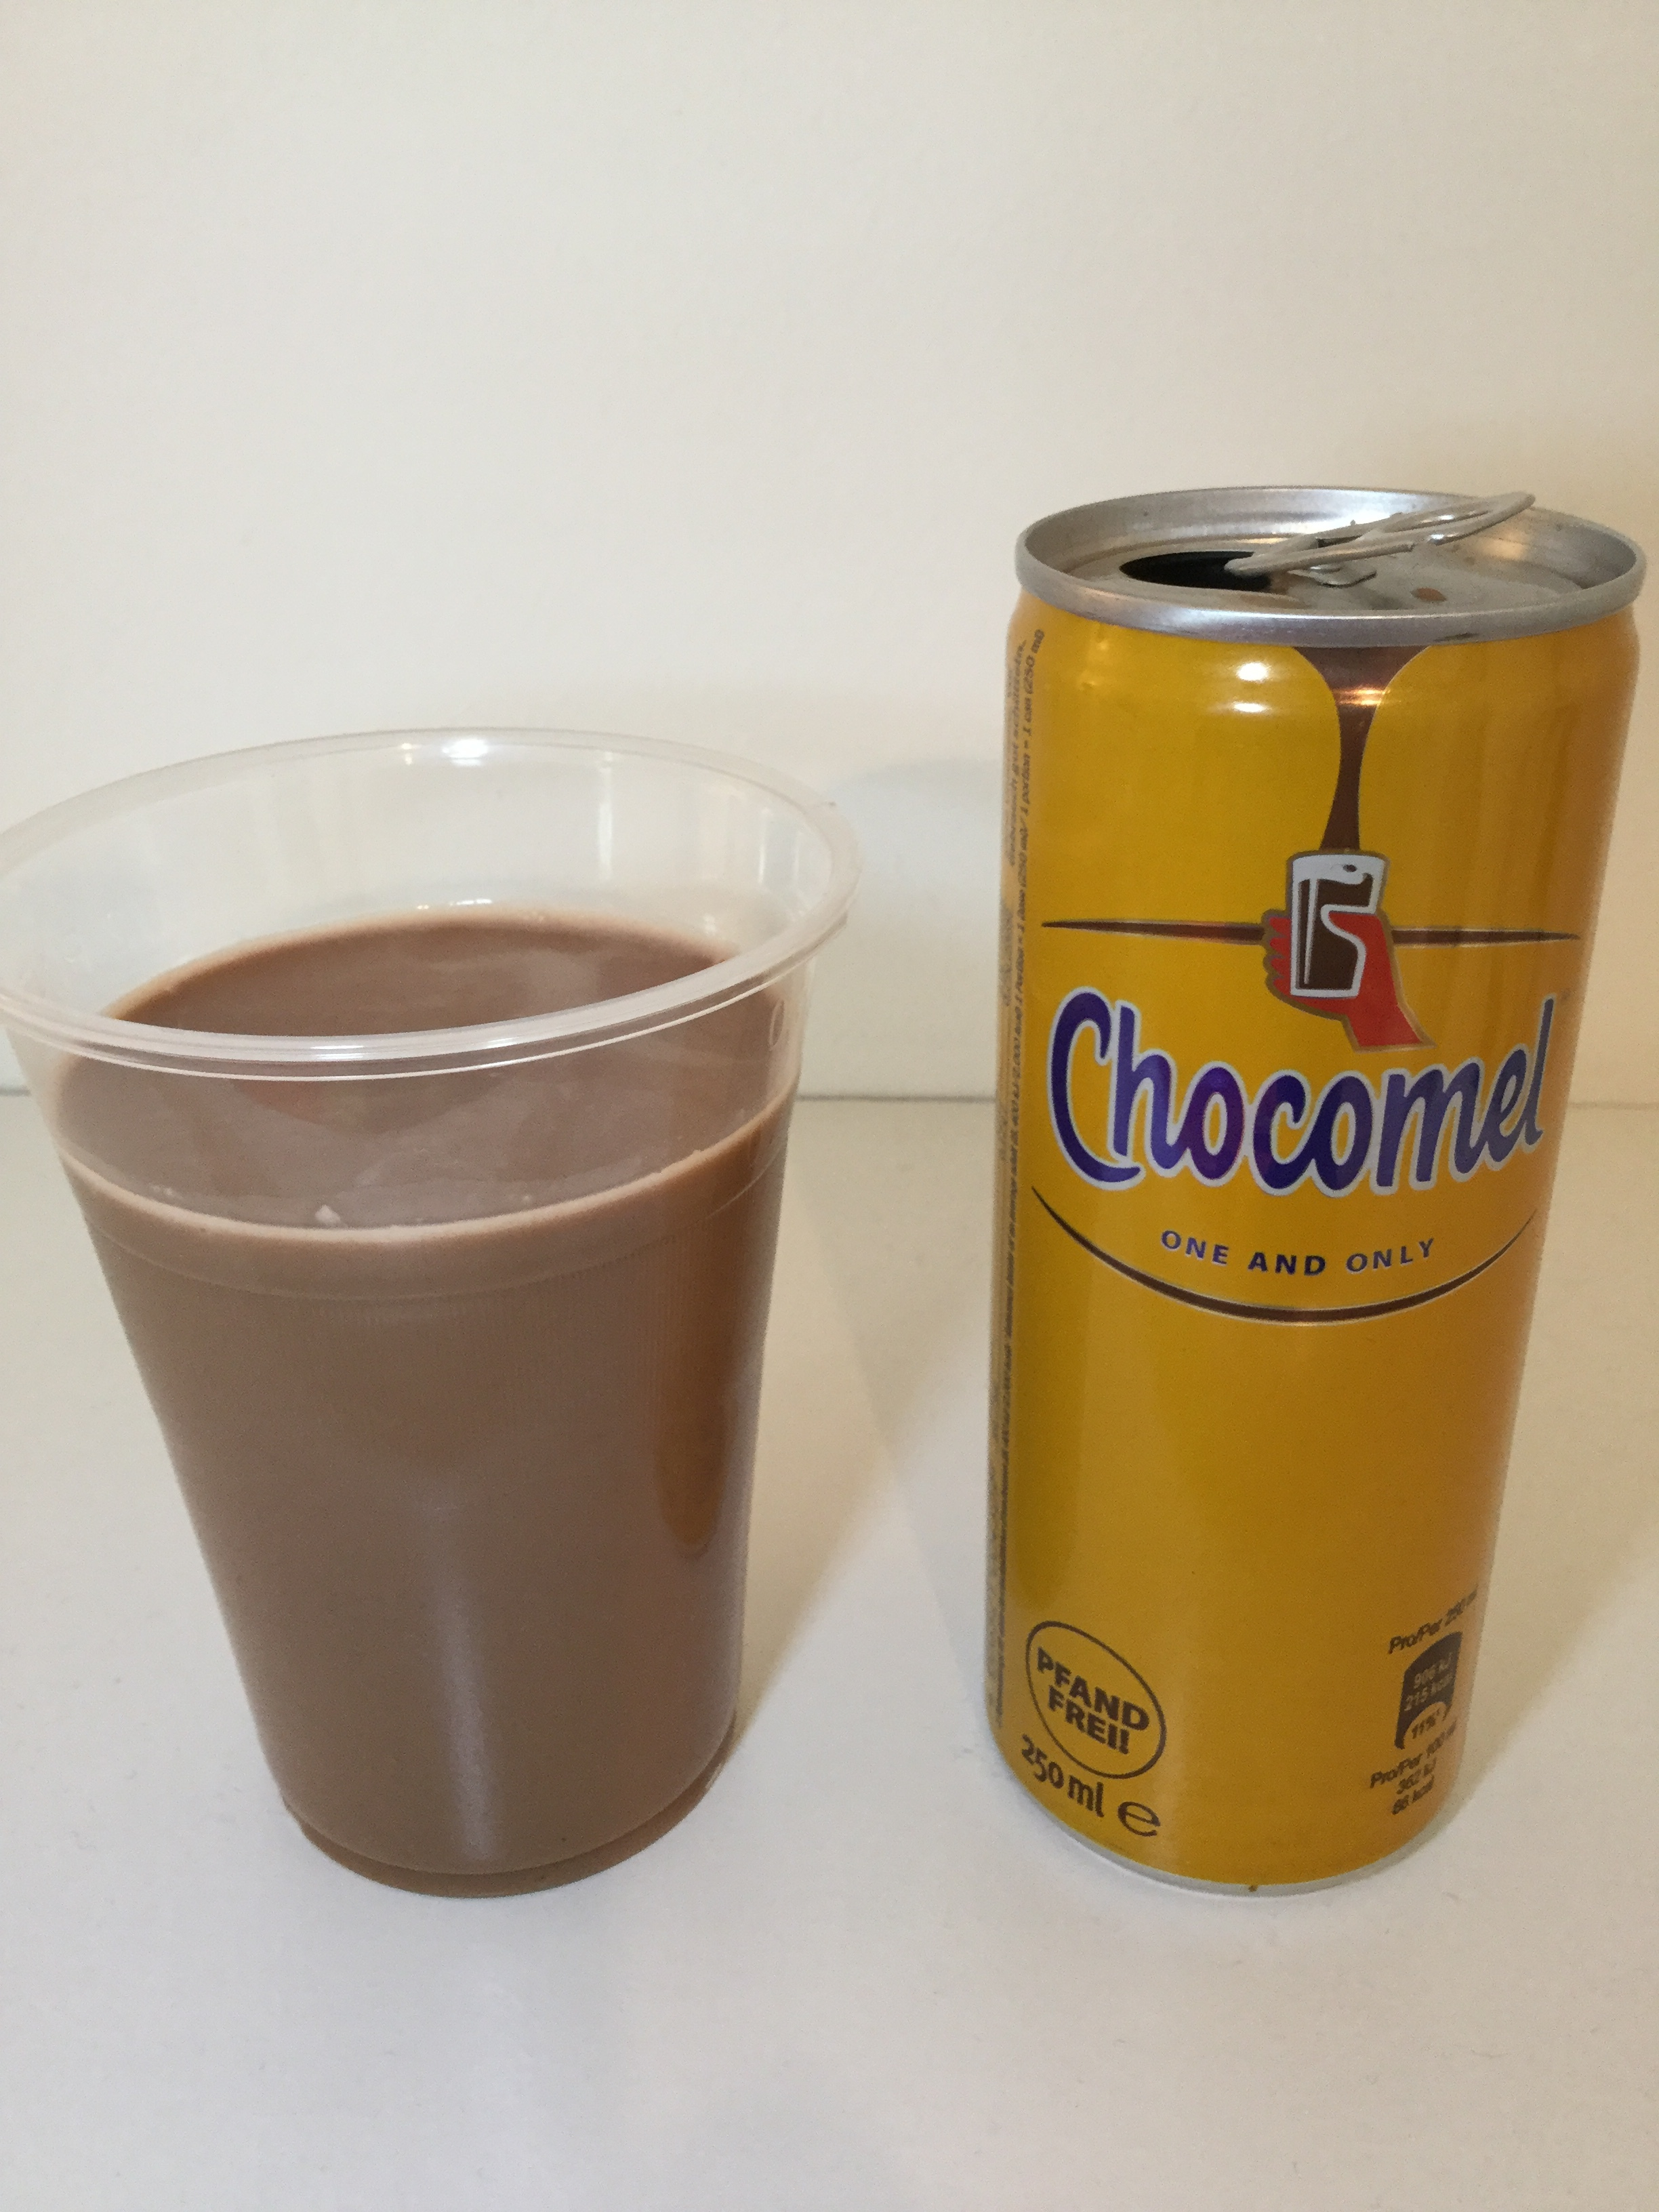 Chocomel (can) Cup